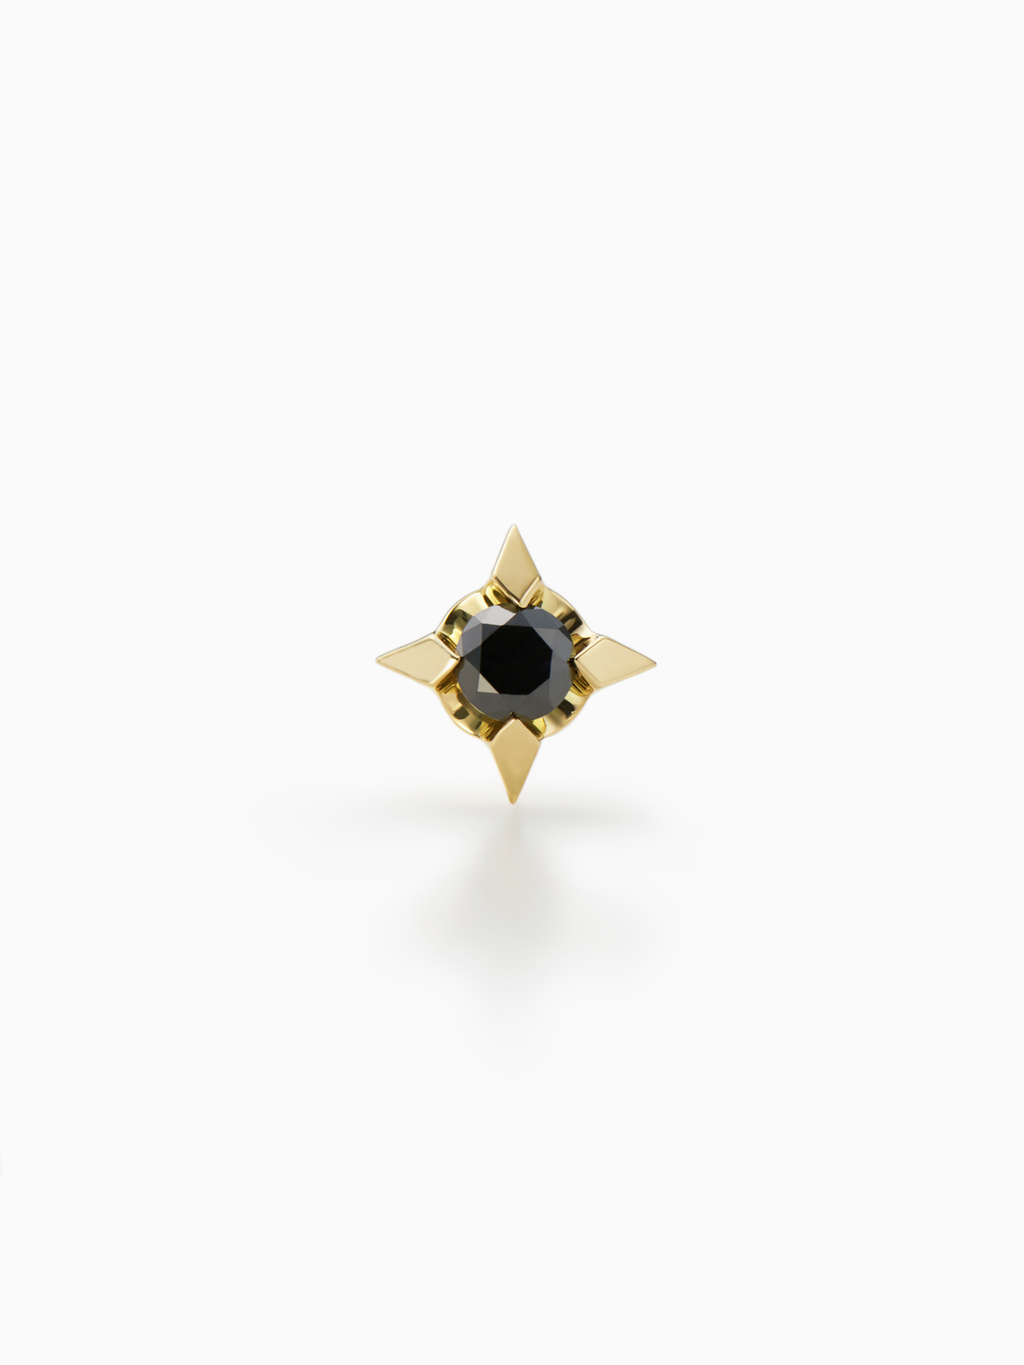 Anteres 03 / Earring / Diamond / Gold